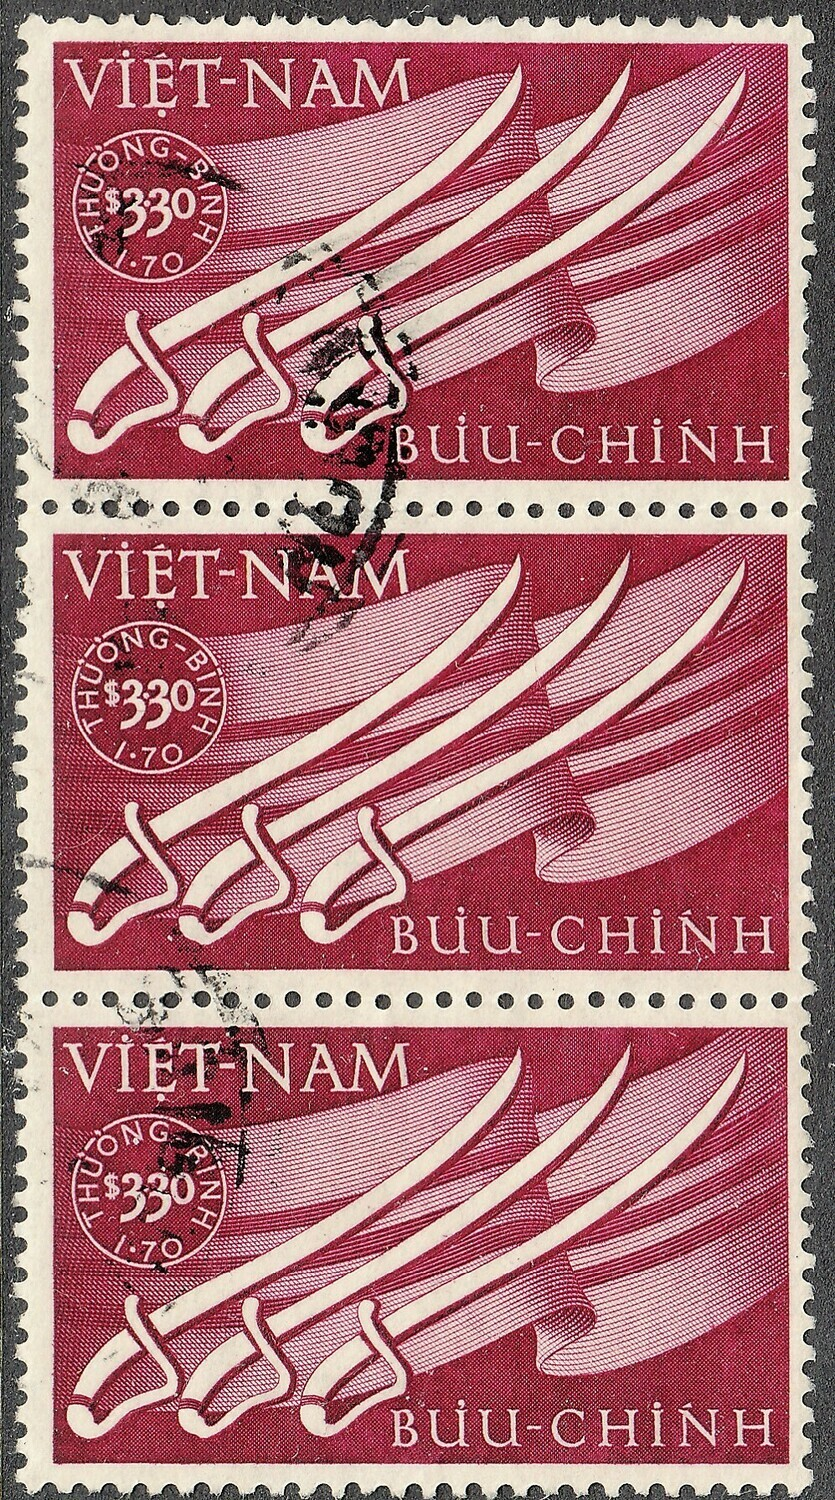 Vietnam 1952 3p.30 + 1p.70 Wounded Soldiers Relief Fund Strip of 3 VFU